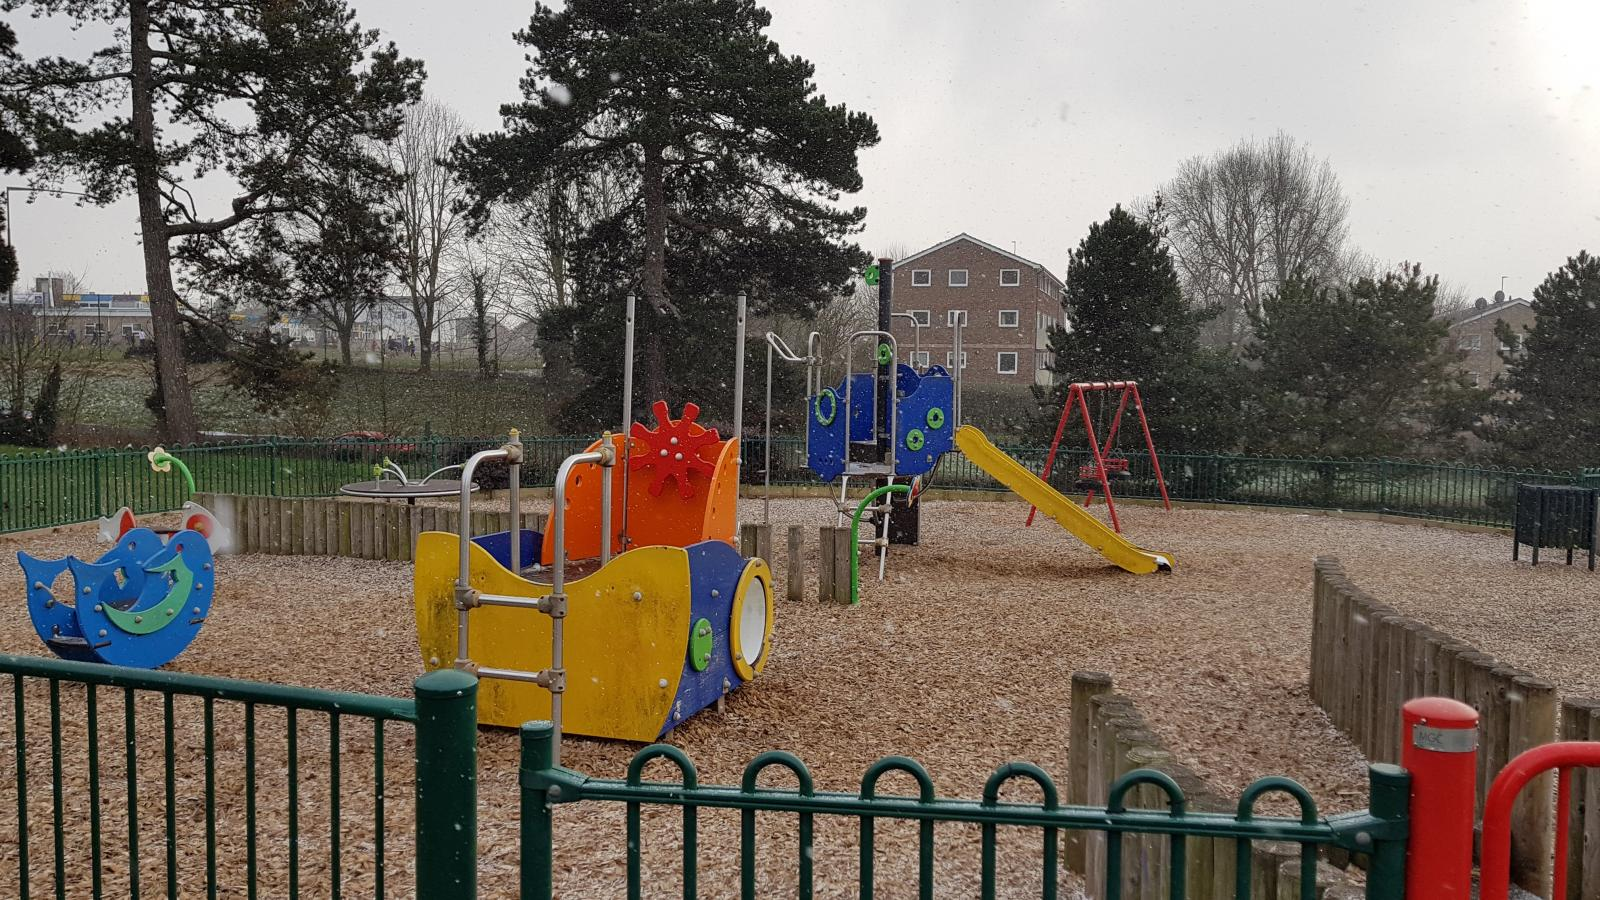 Boyn Grove Play Area